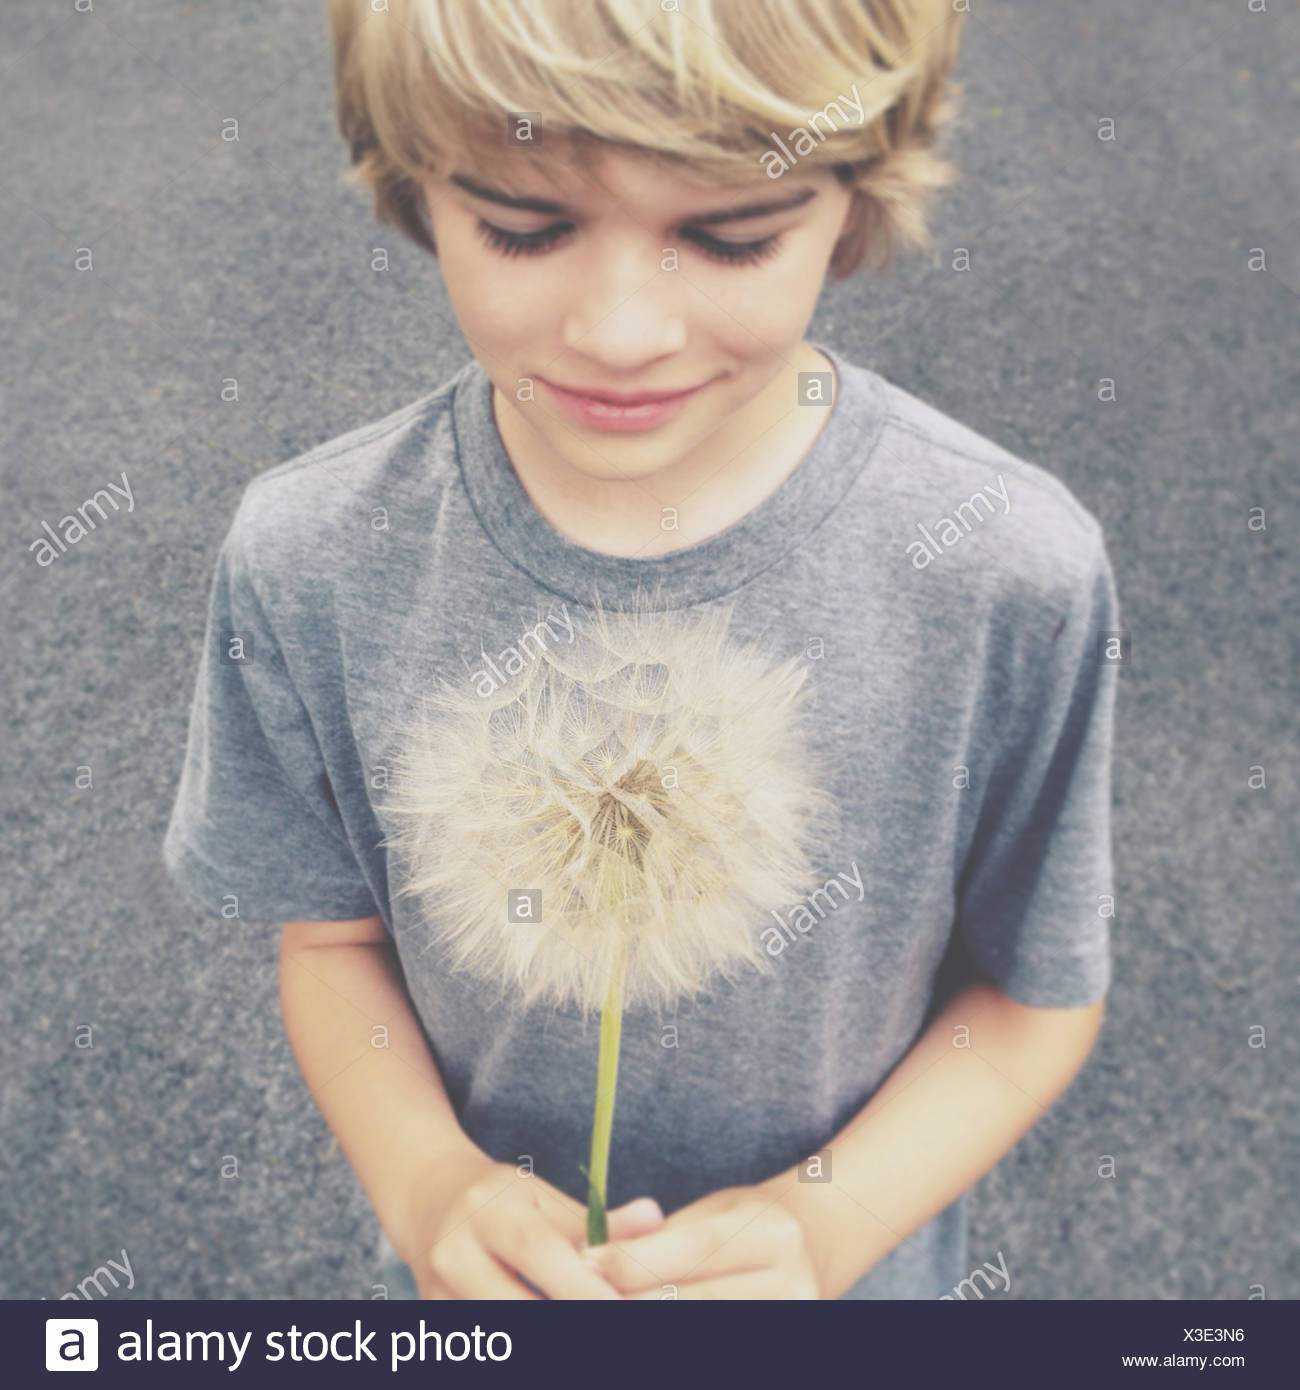 Blonde boy holding giant dandelion - Stock Image